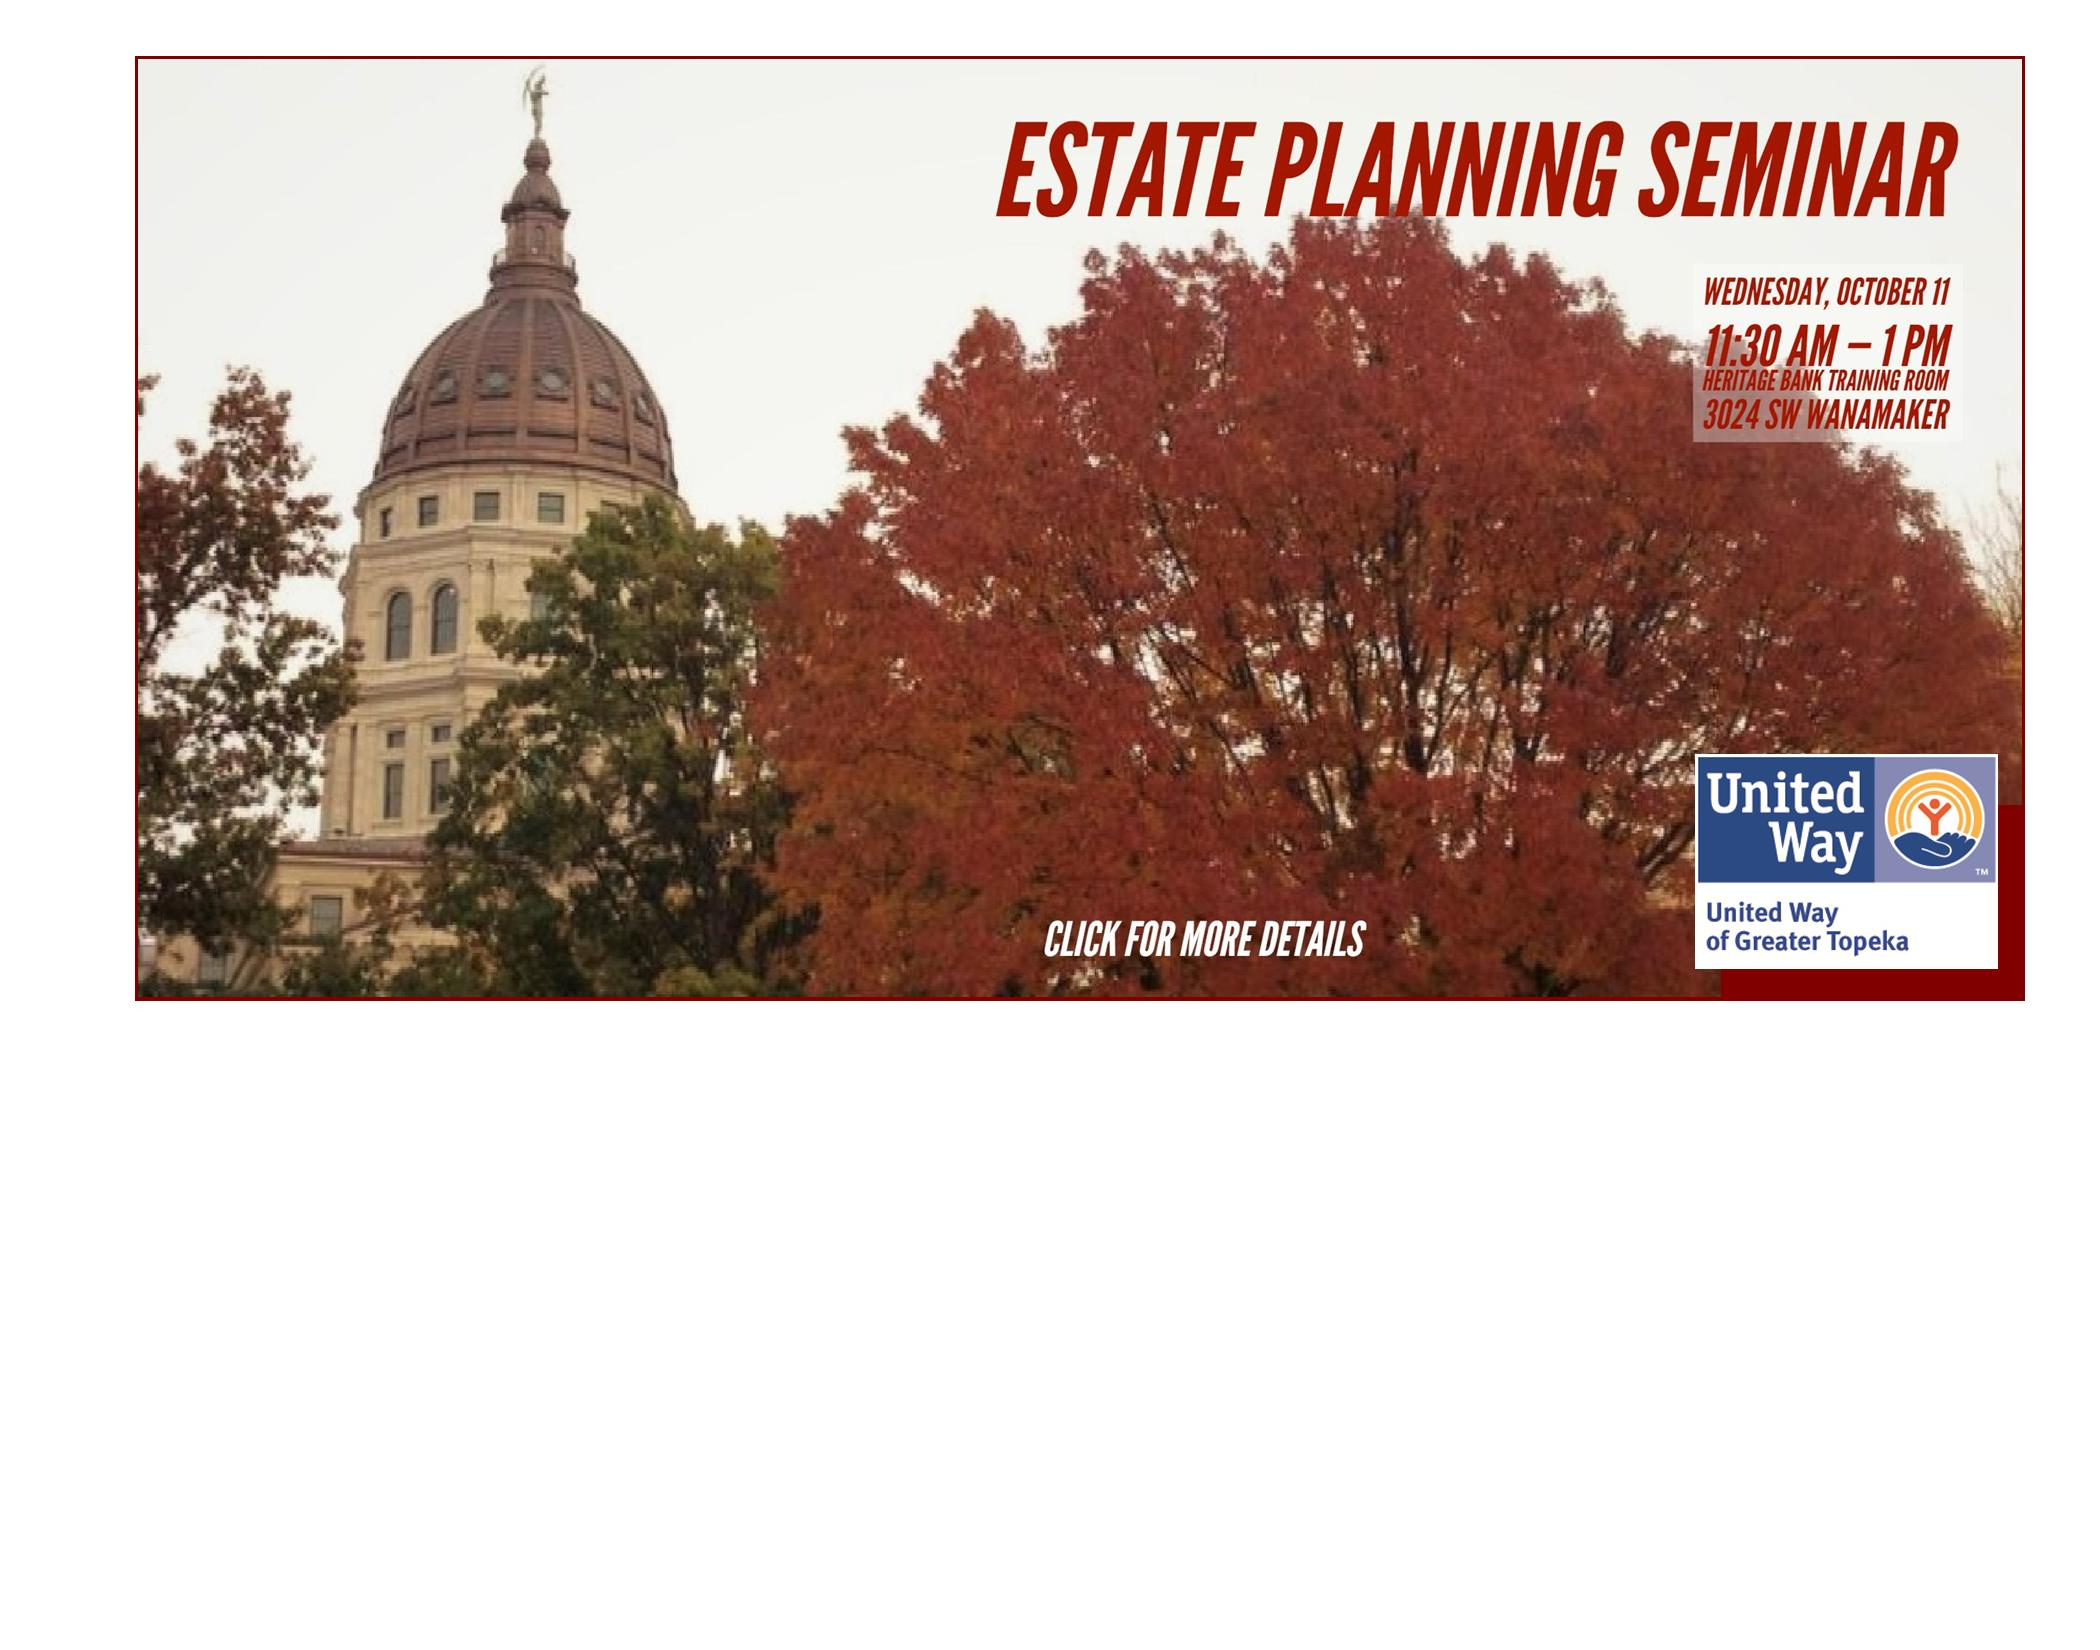 Fall photo with Estate Planning Seminar information